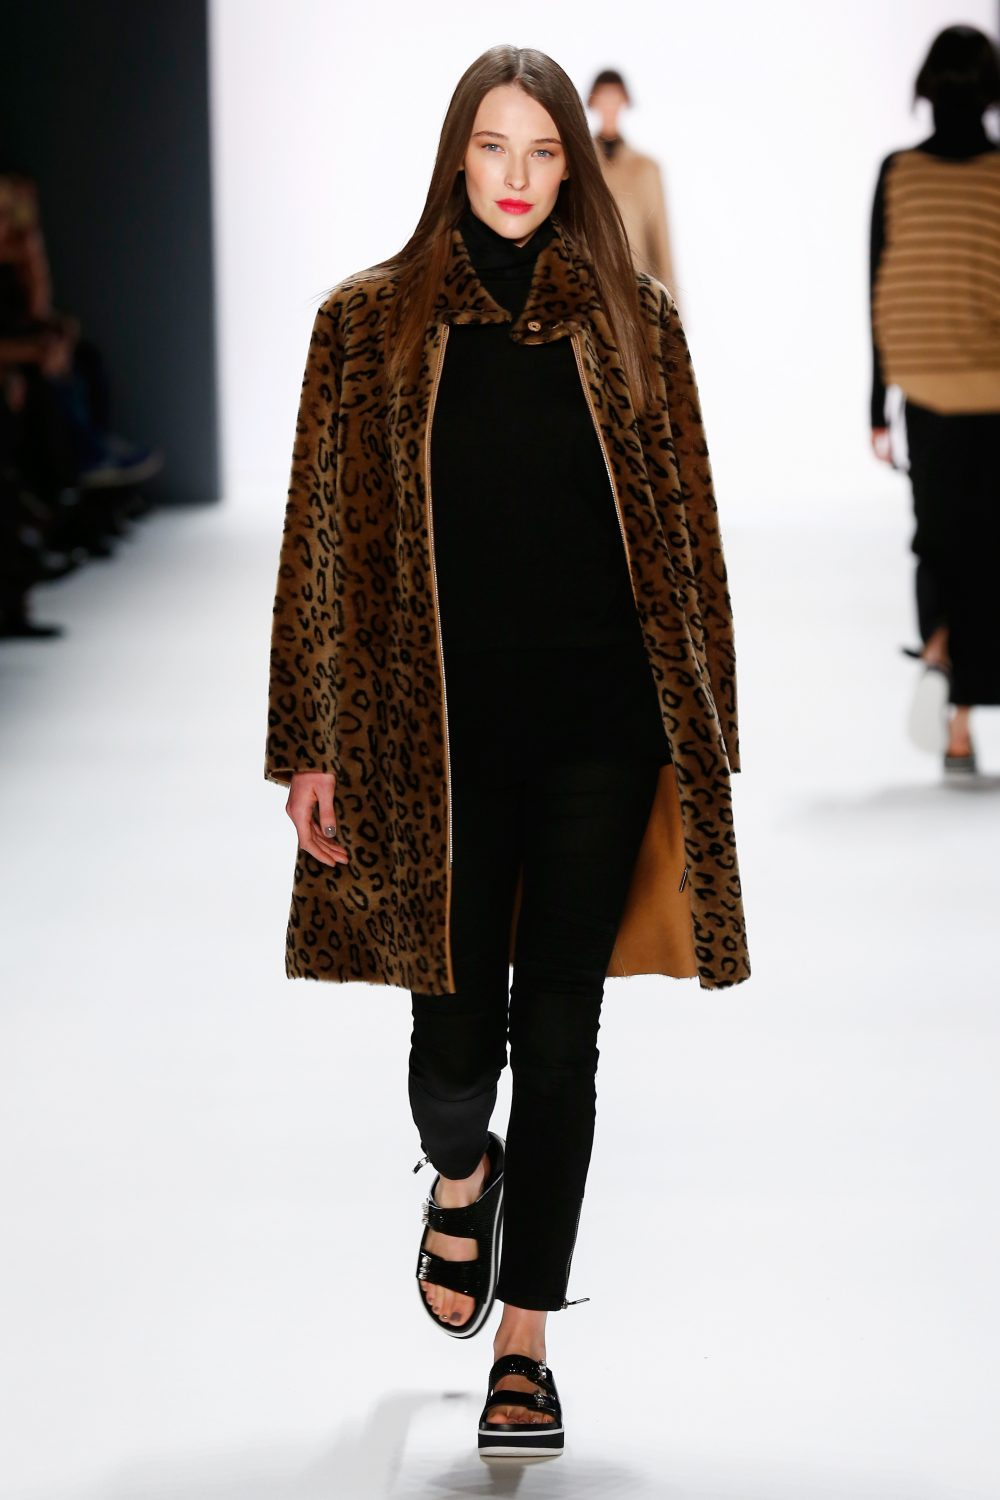 BERLIN, GERMANY - JANUARY Laurel show during the Mercedes-Benz Fashion Week Berlin Autumn/Winter 2016 (Photo by Frazer Harrison/Getty Images for Laurel)